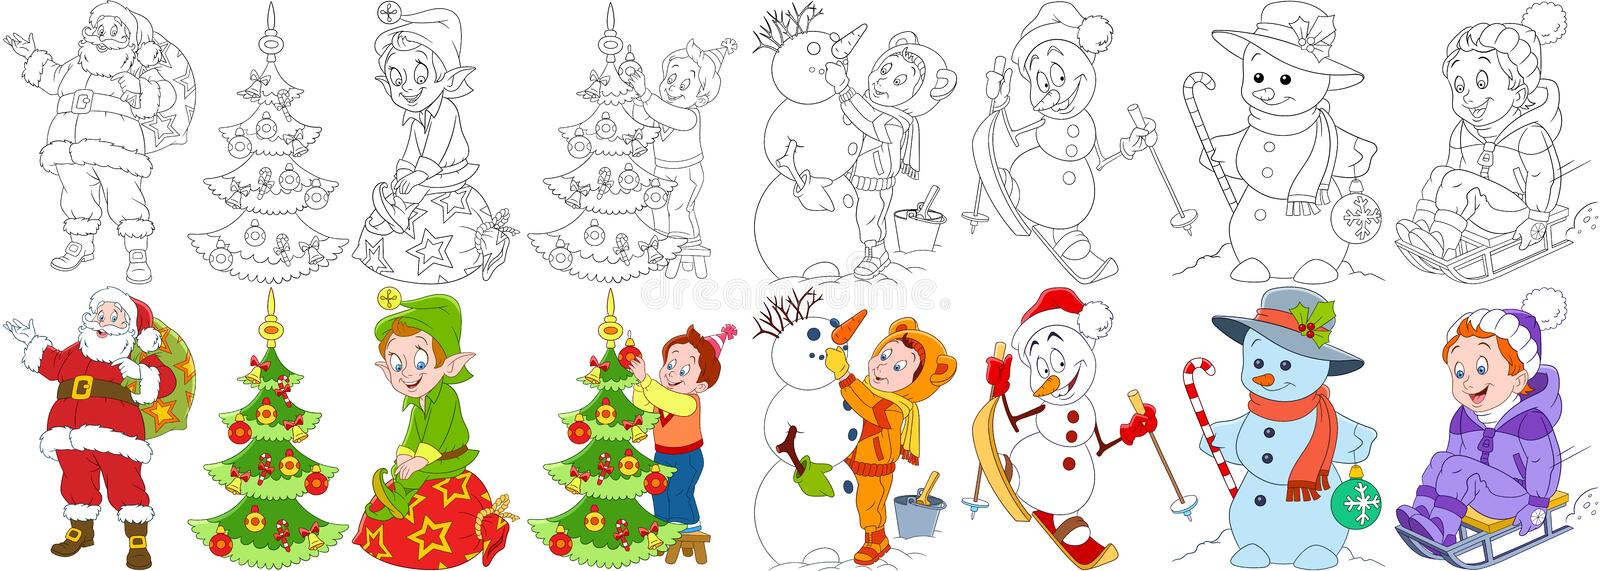 Cartoon christmas set royalty free illustration